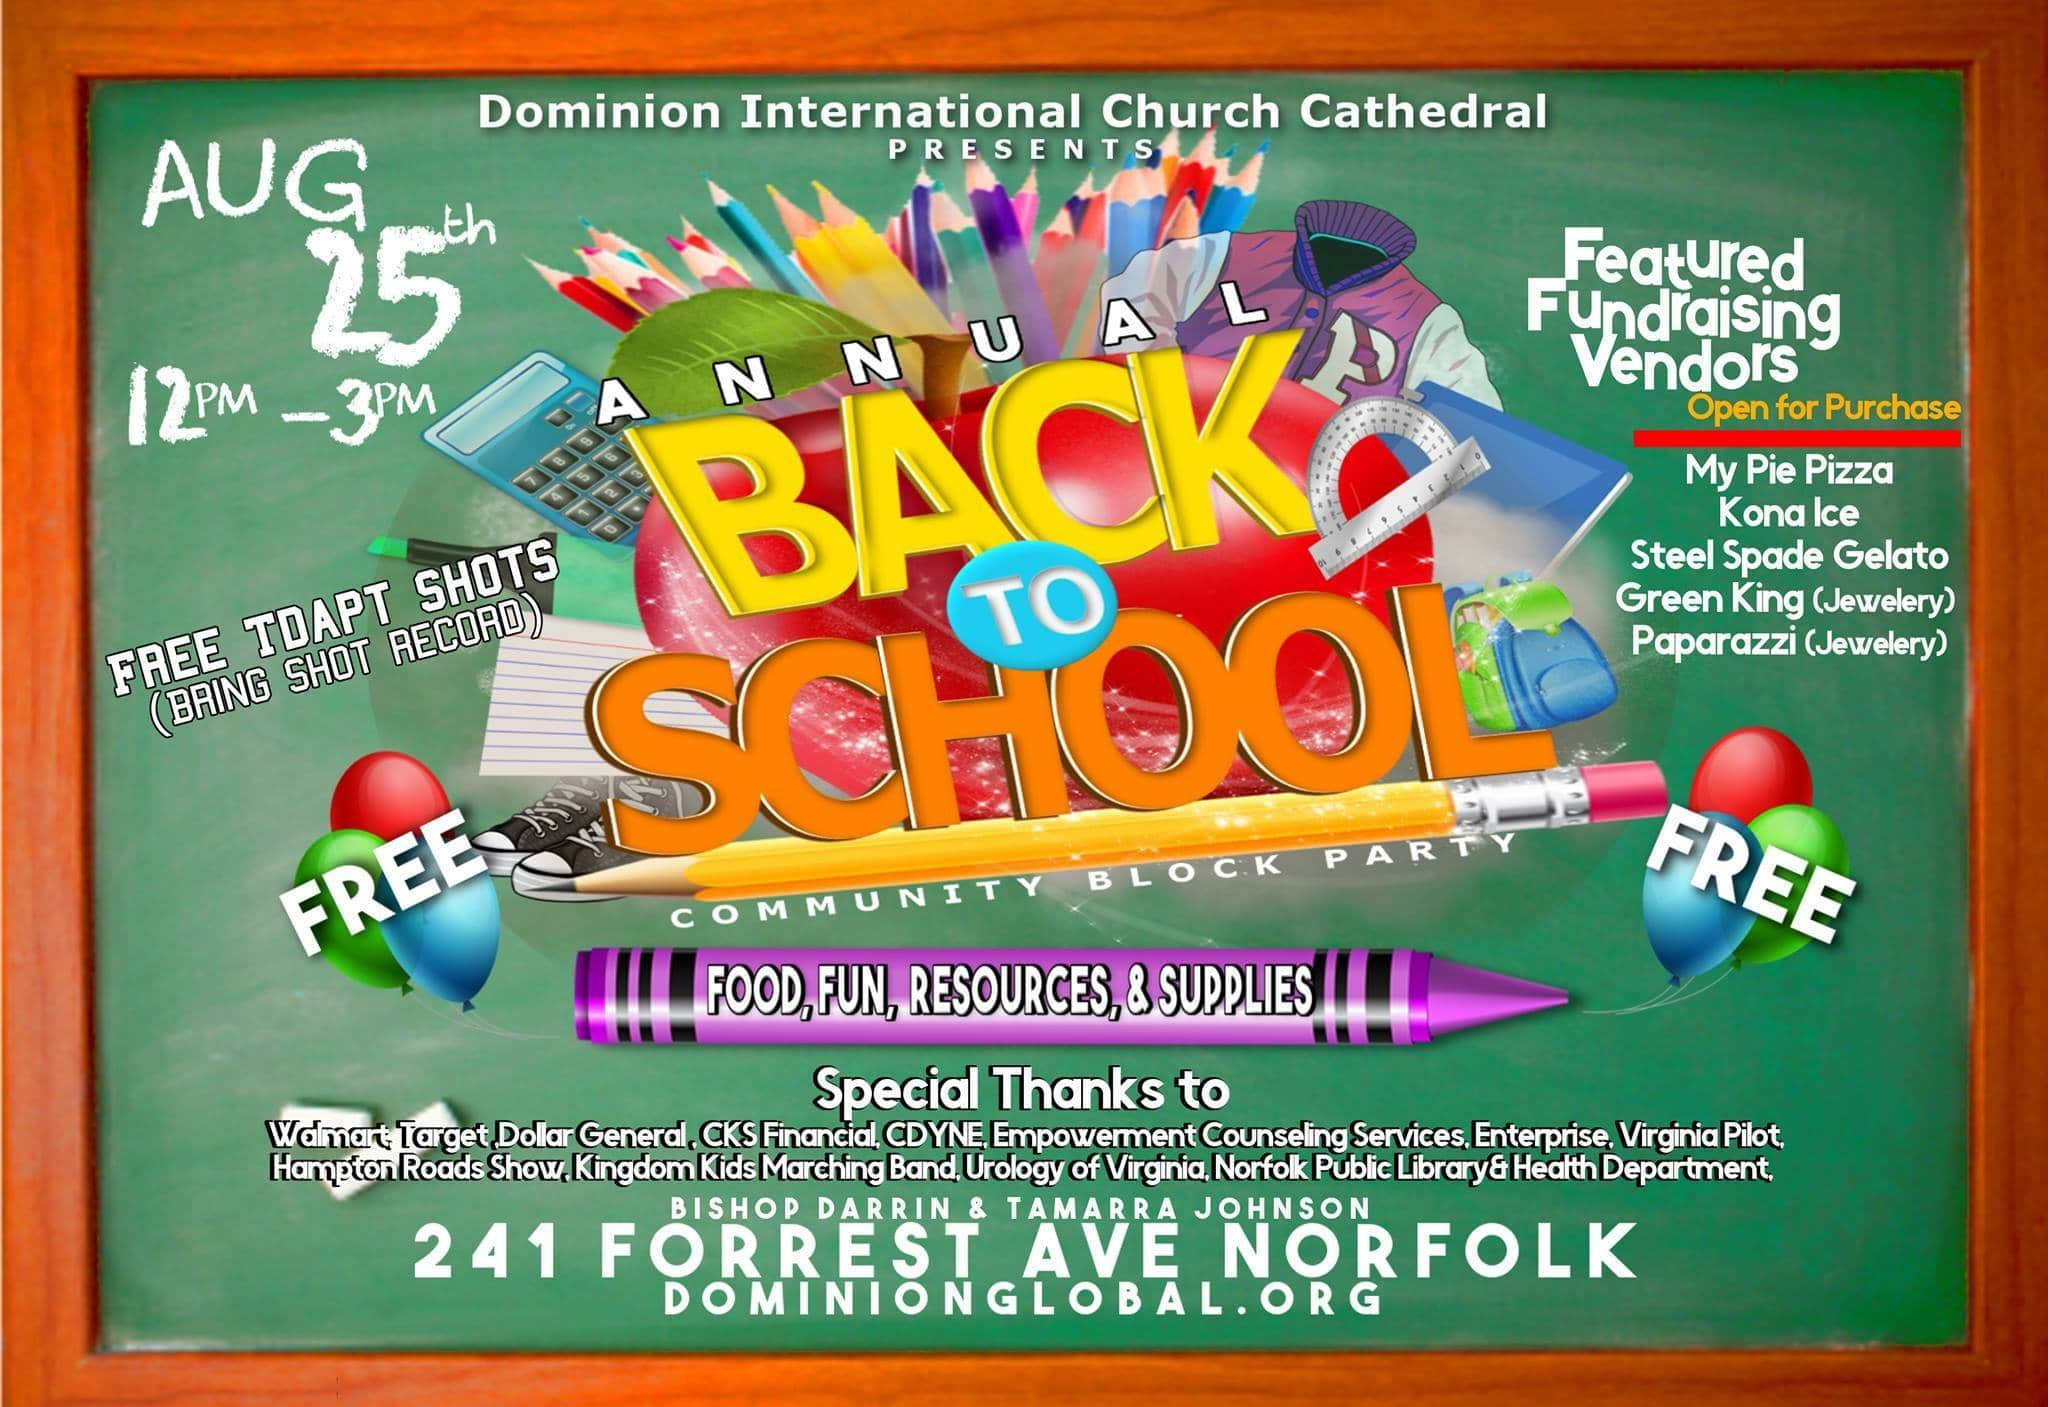 Annual Back to School Block Party by Dominion International Church Cathedral